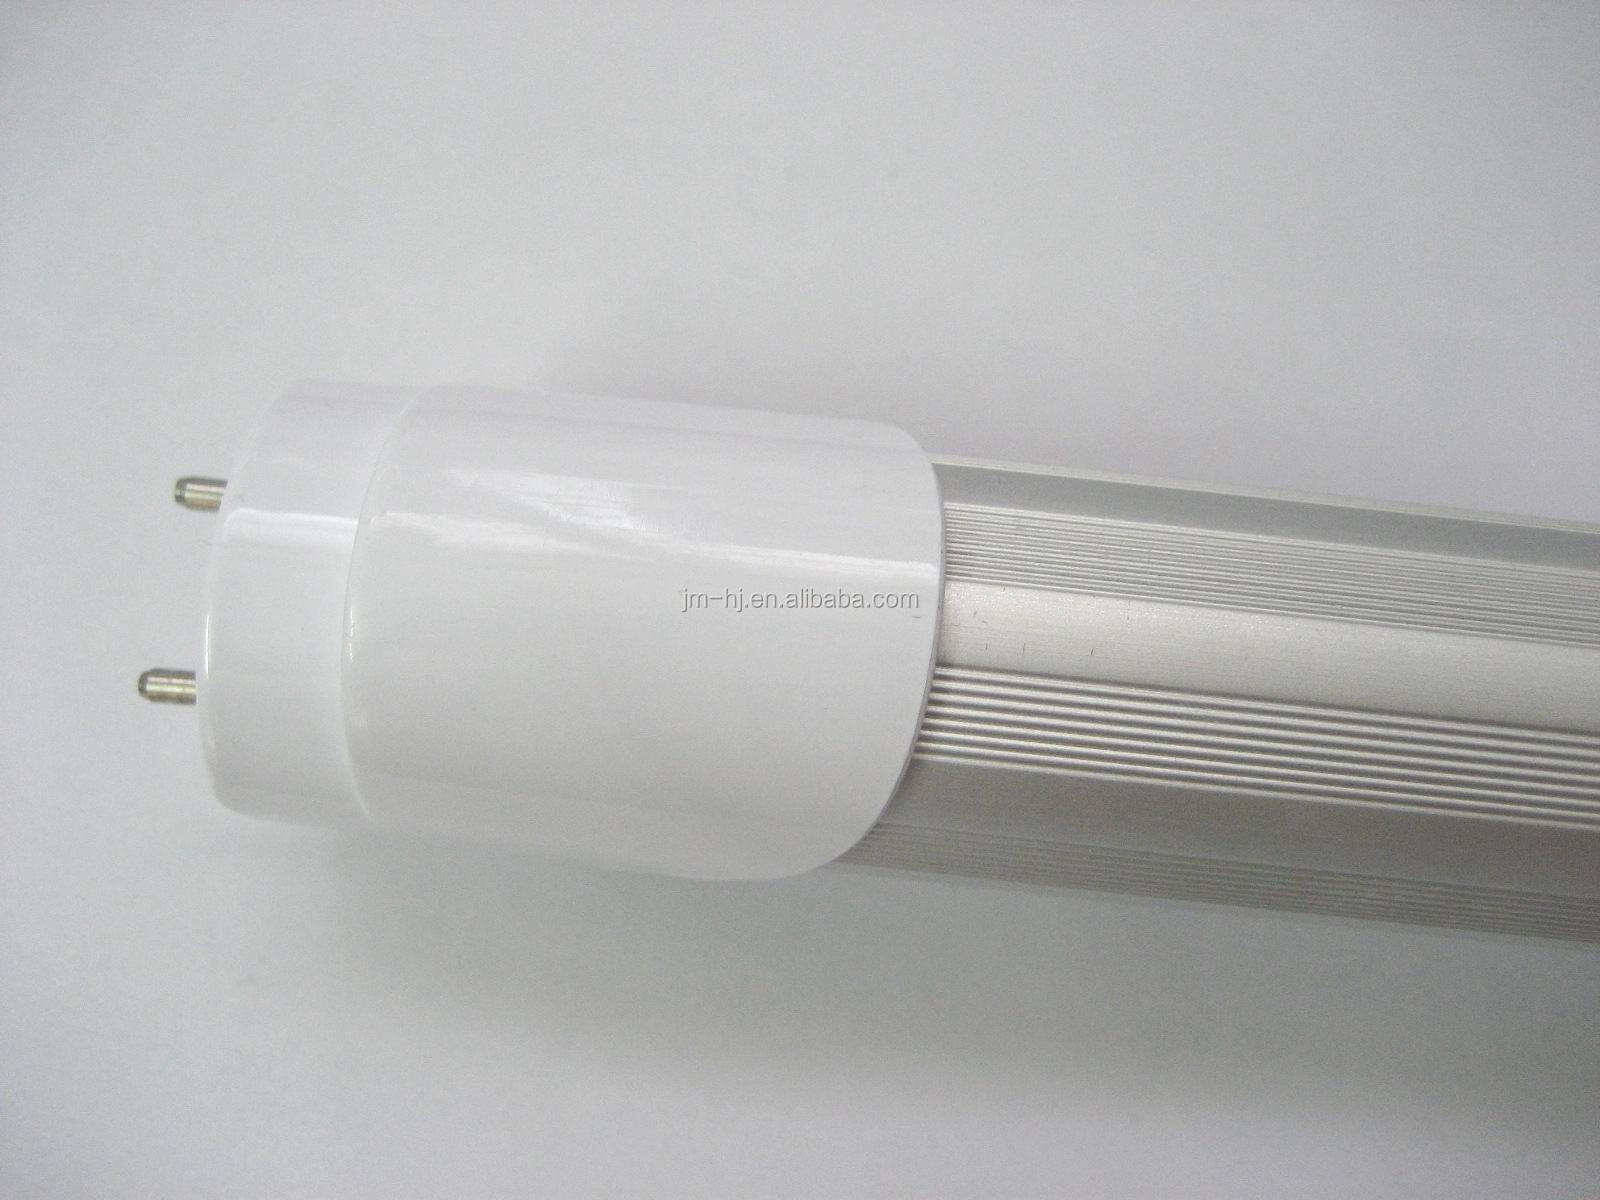 18W T5 CIRCULAR LED TUBE LIGHT 1200MM